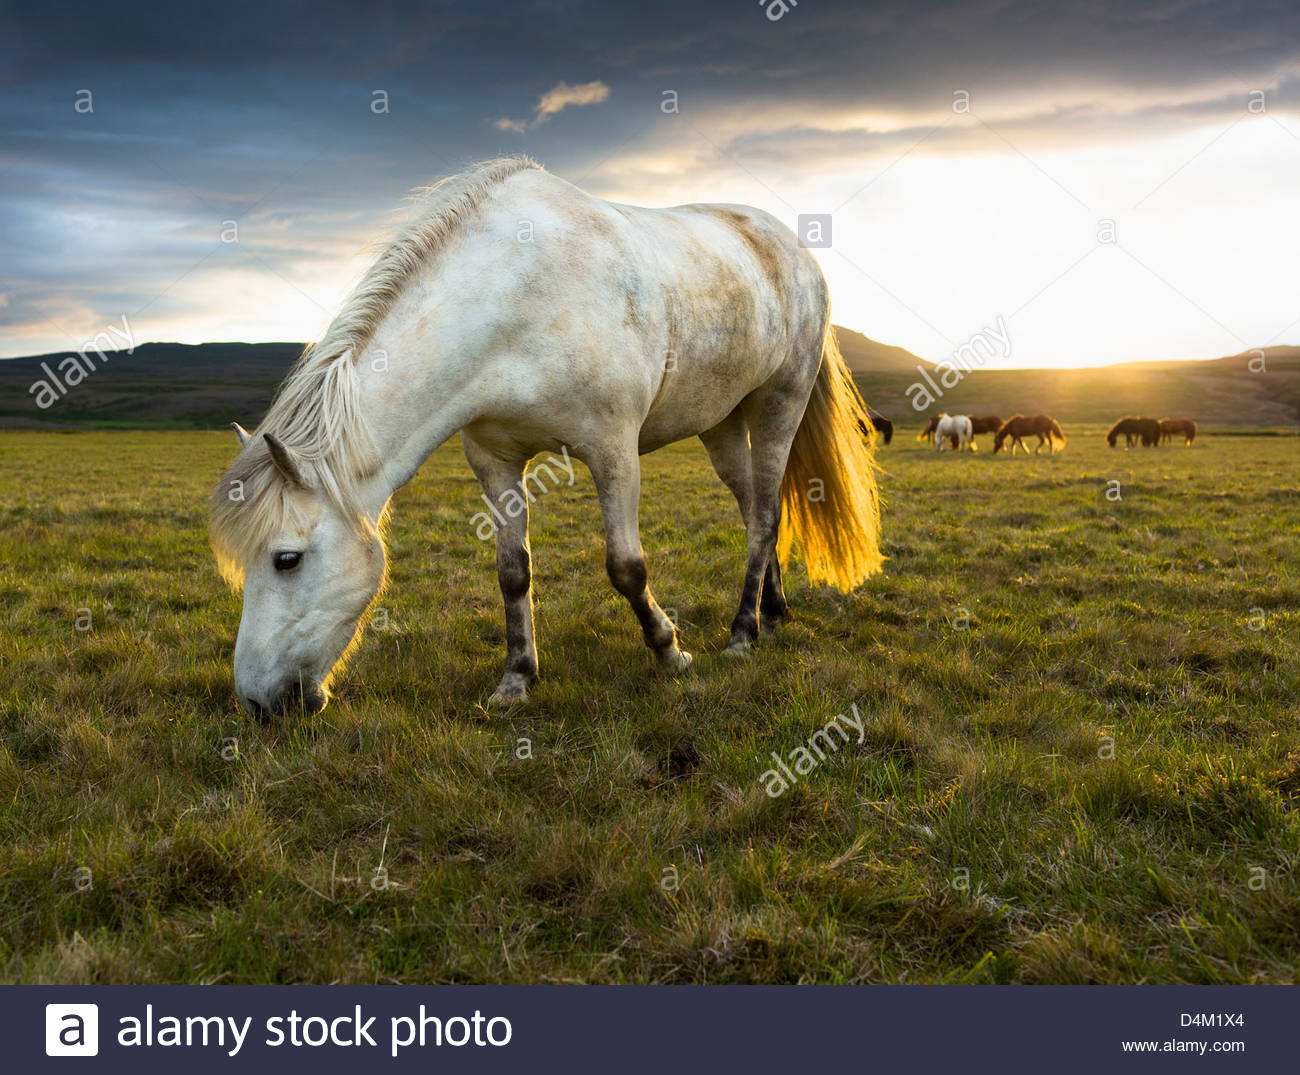 Horse grazing in rural field - Stock Image